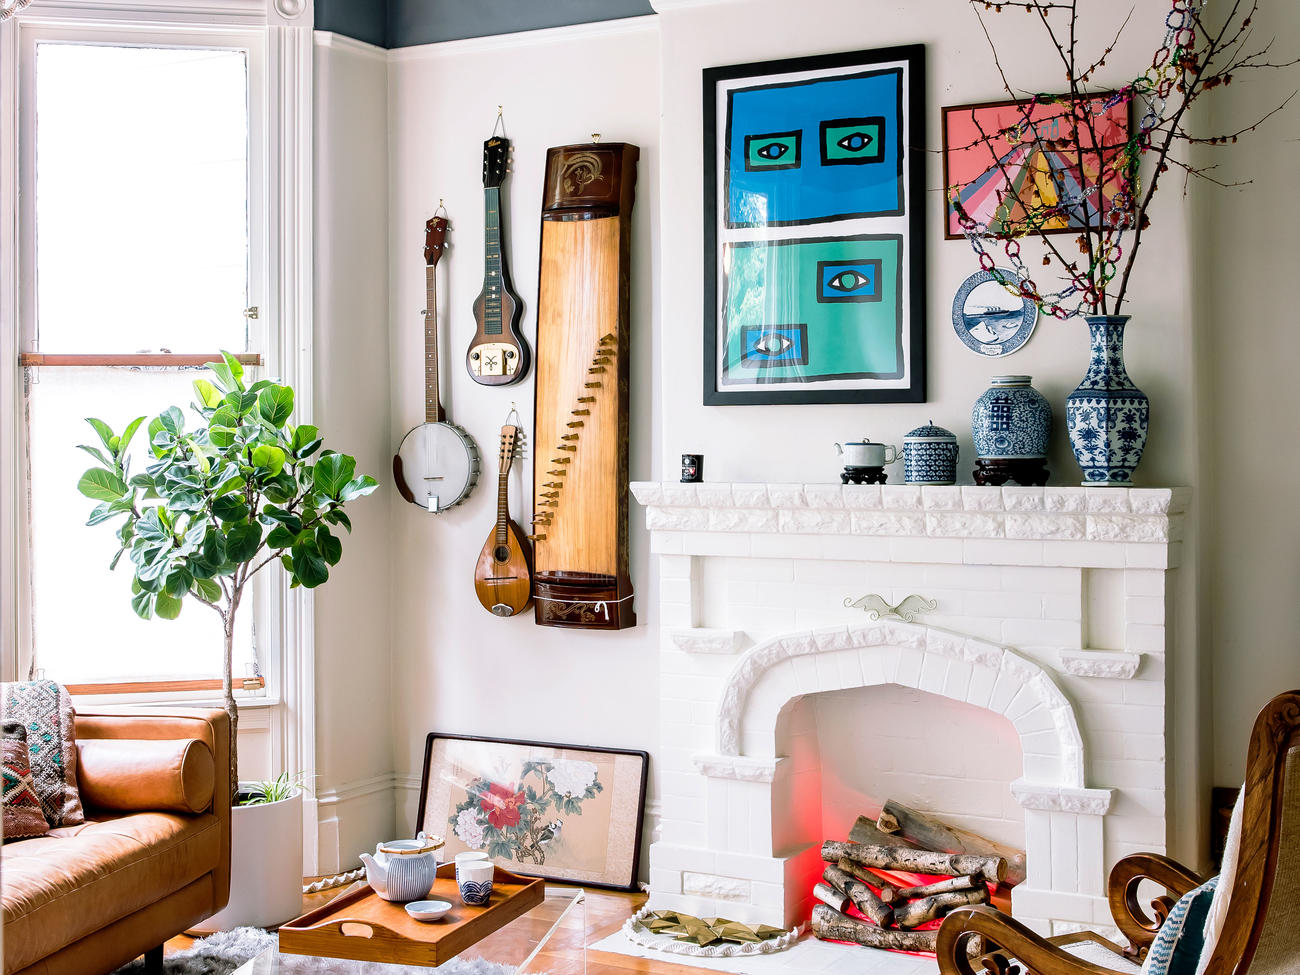 How to Make Art the Star in Your Home Decor